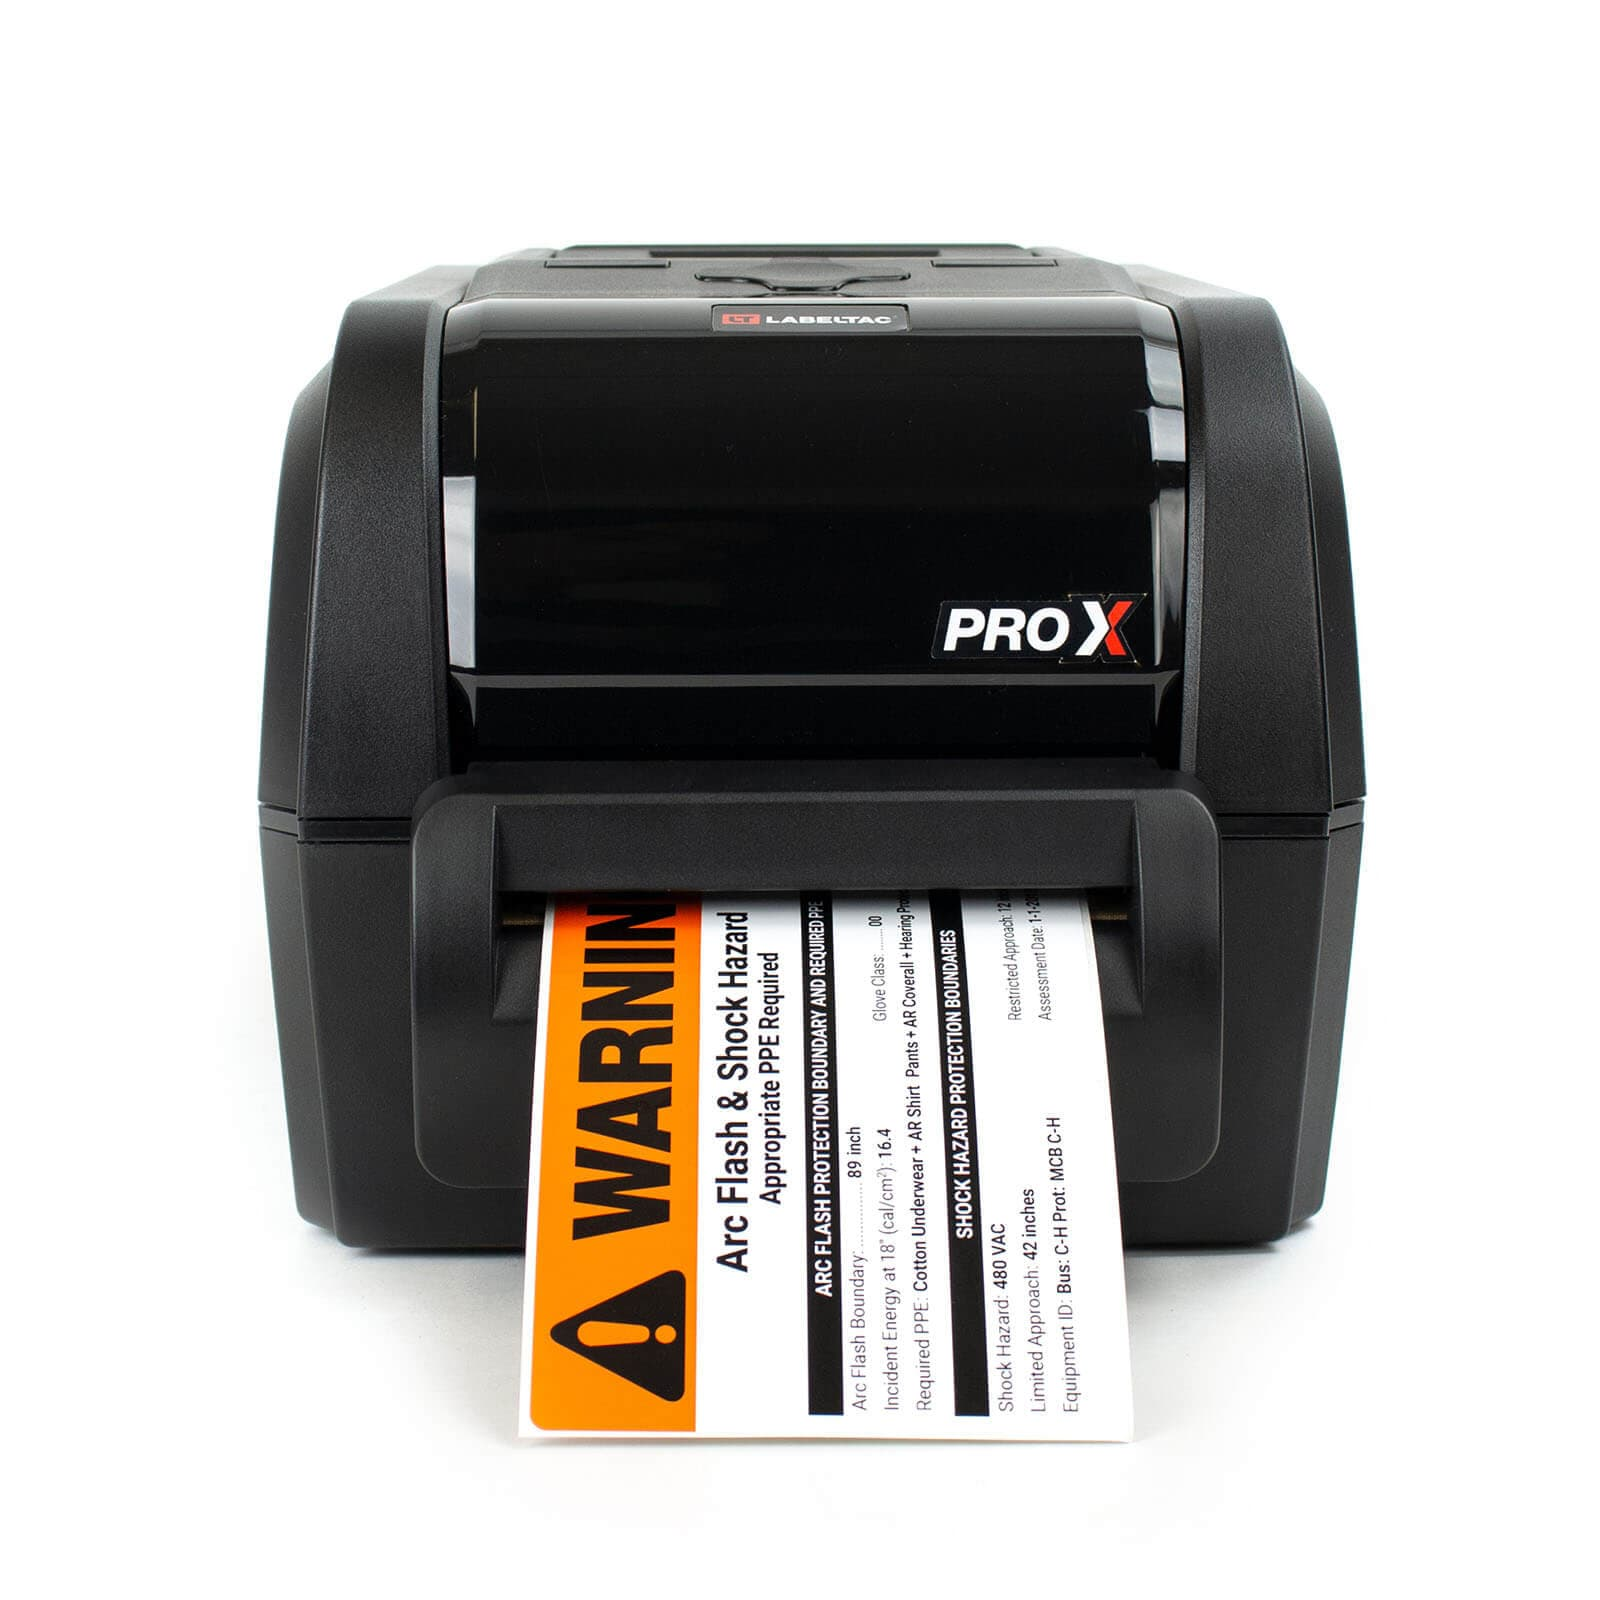 LabelTac Pro X - Industrial Label Printer